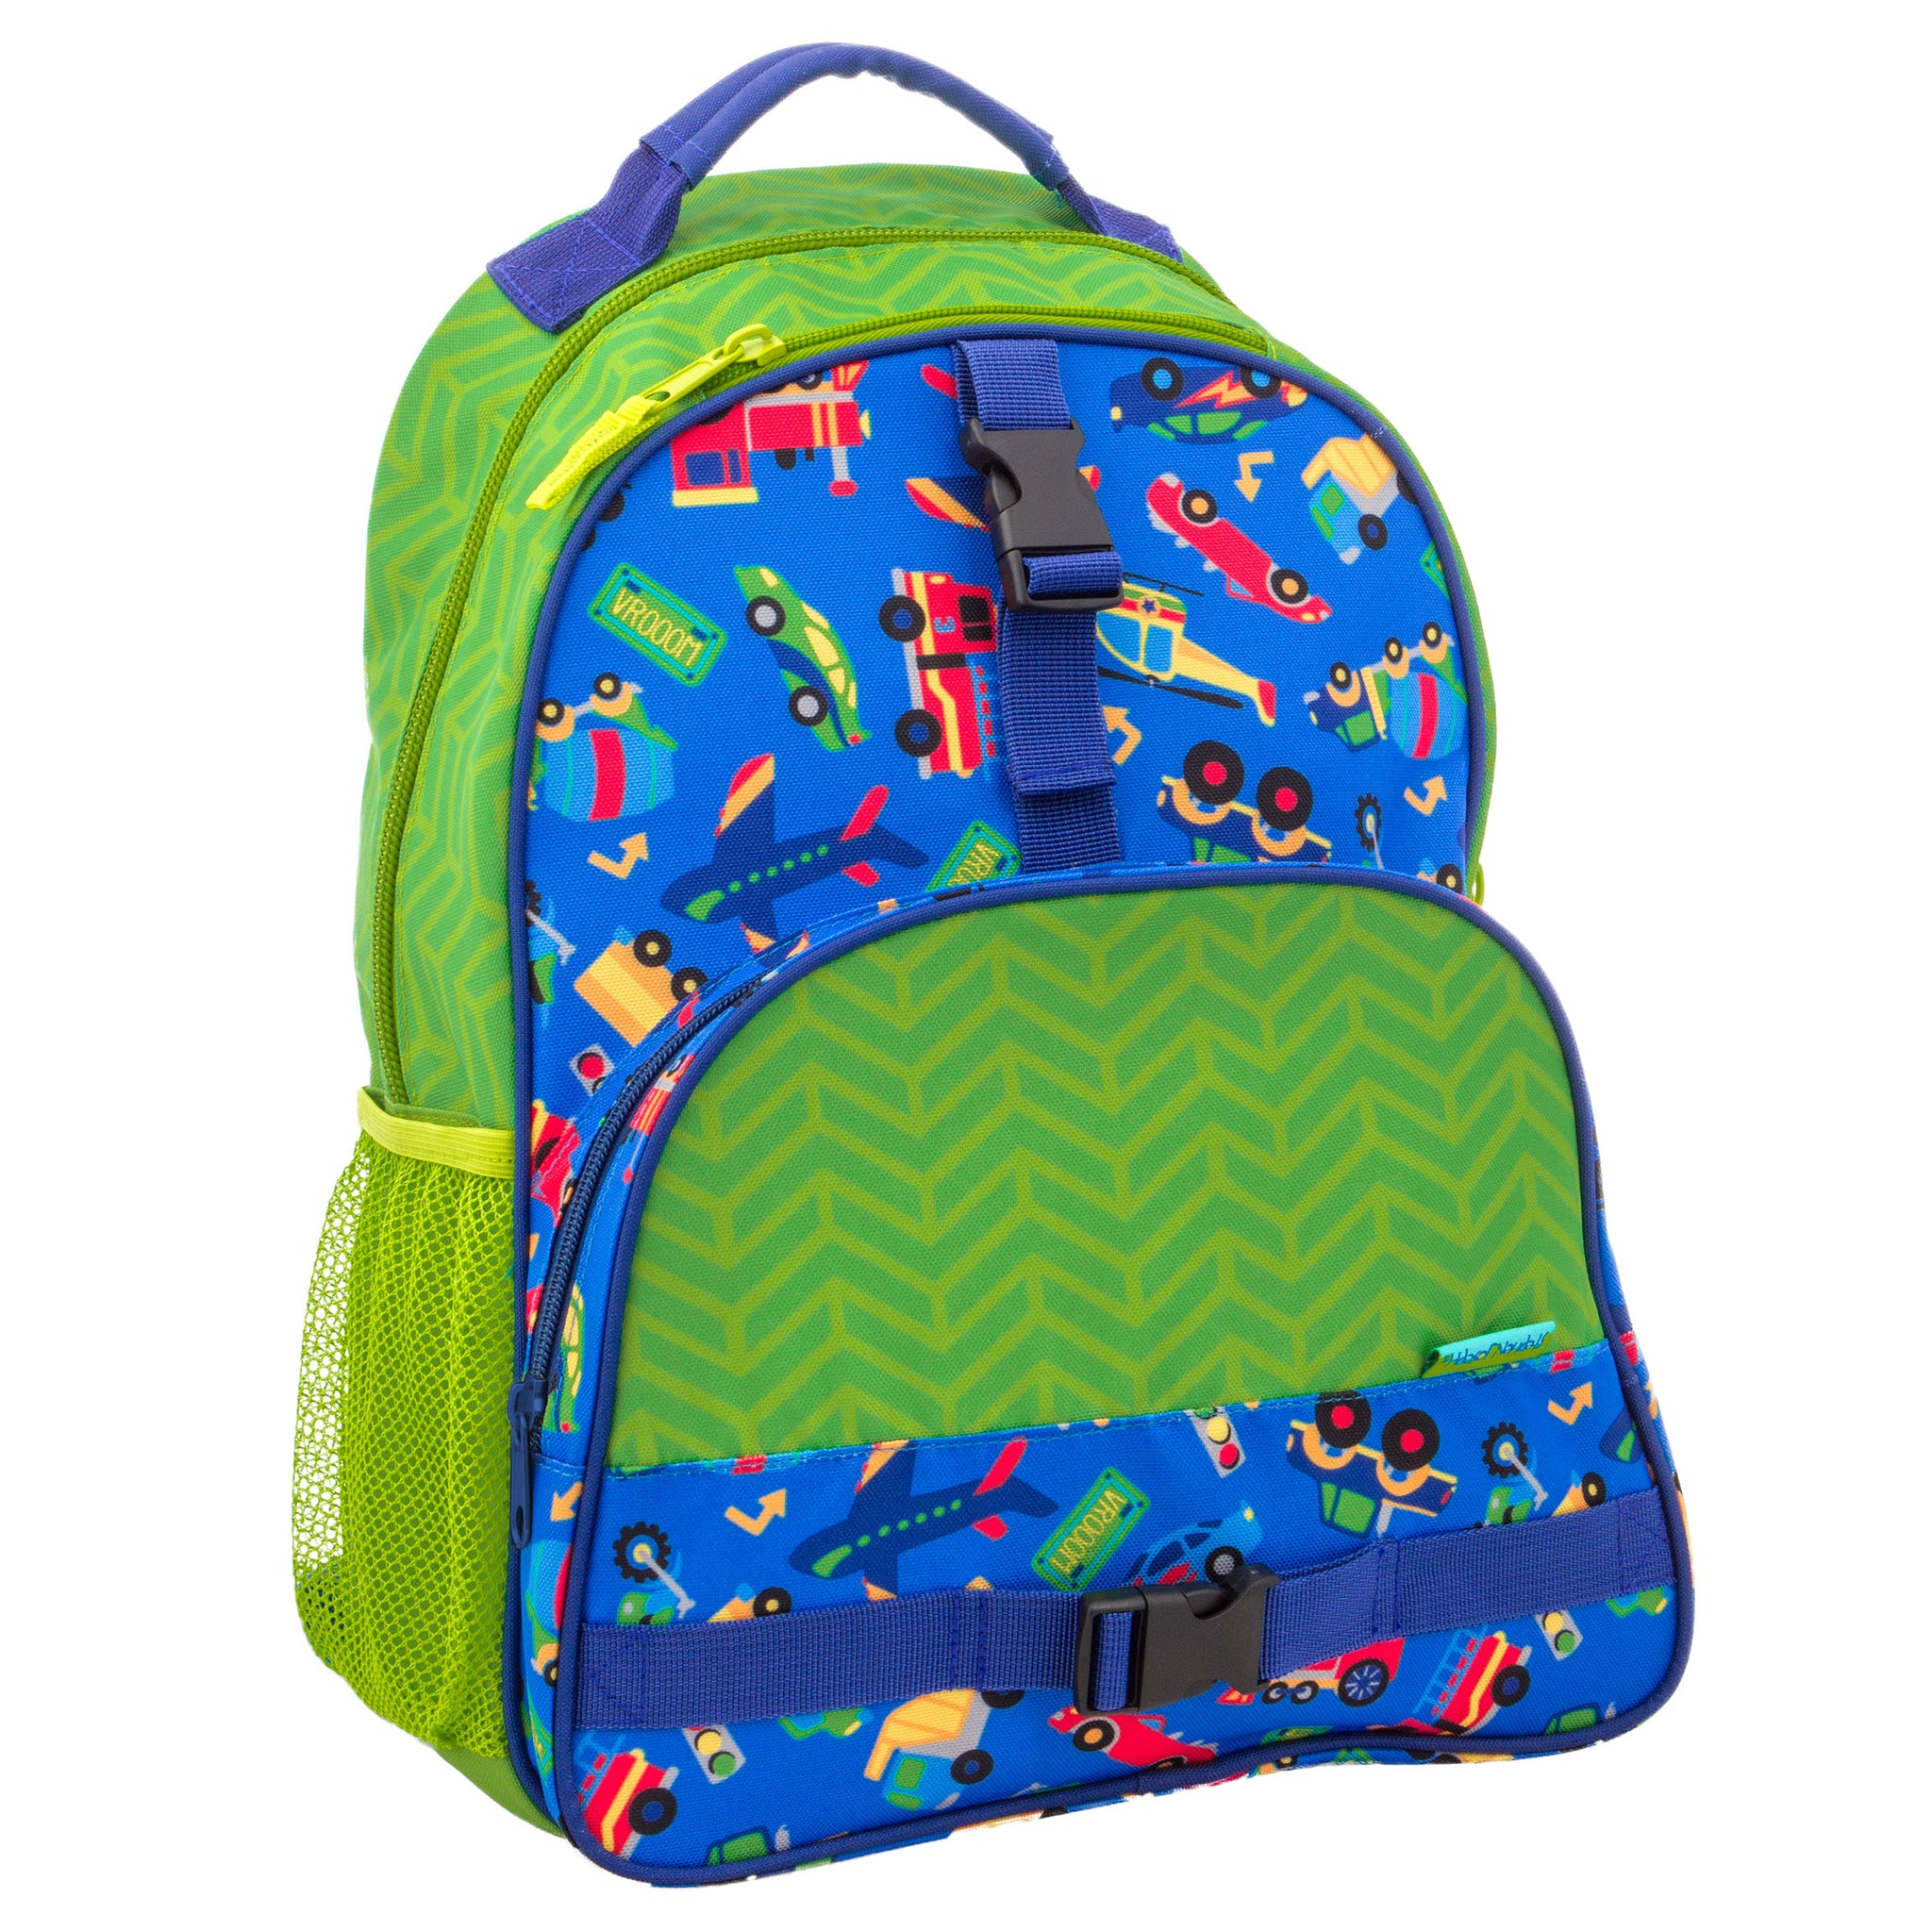 Transportation Print Backpack